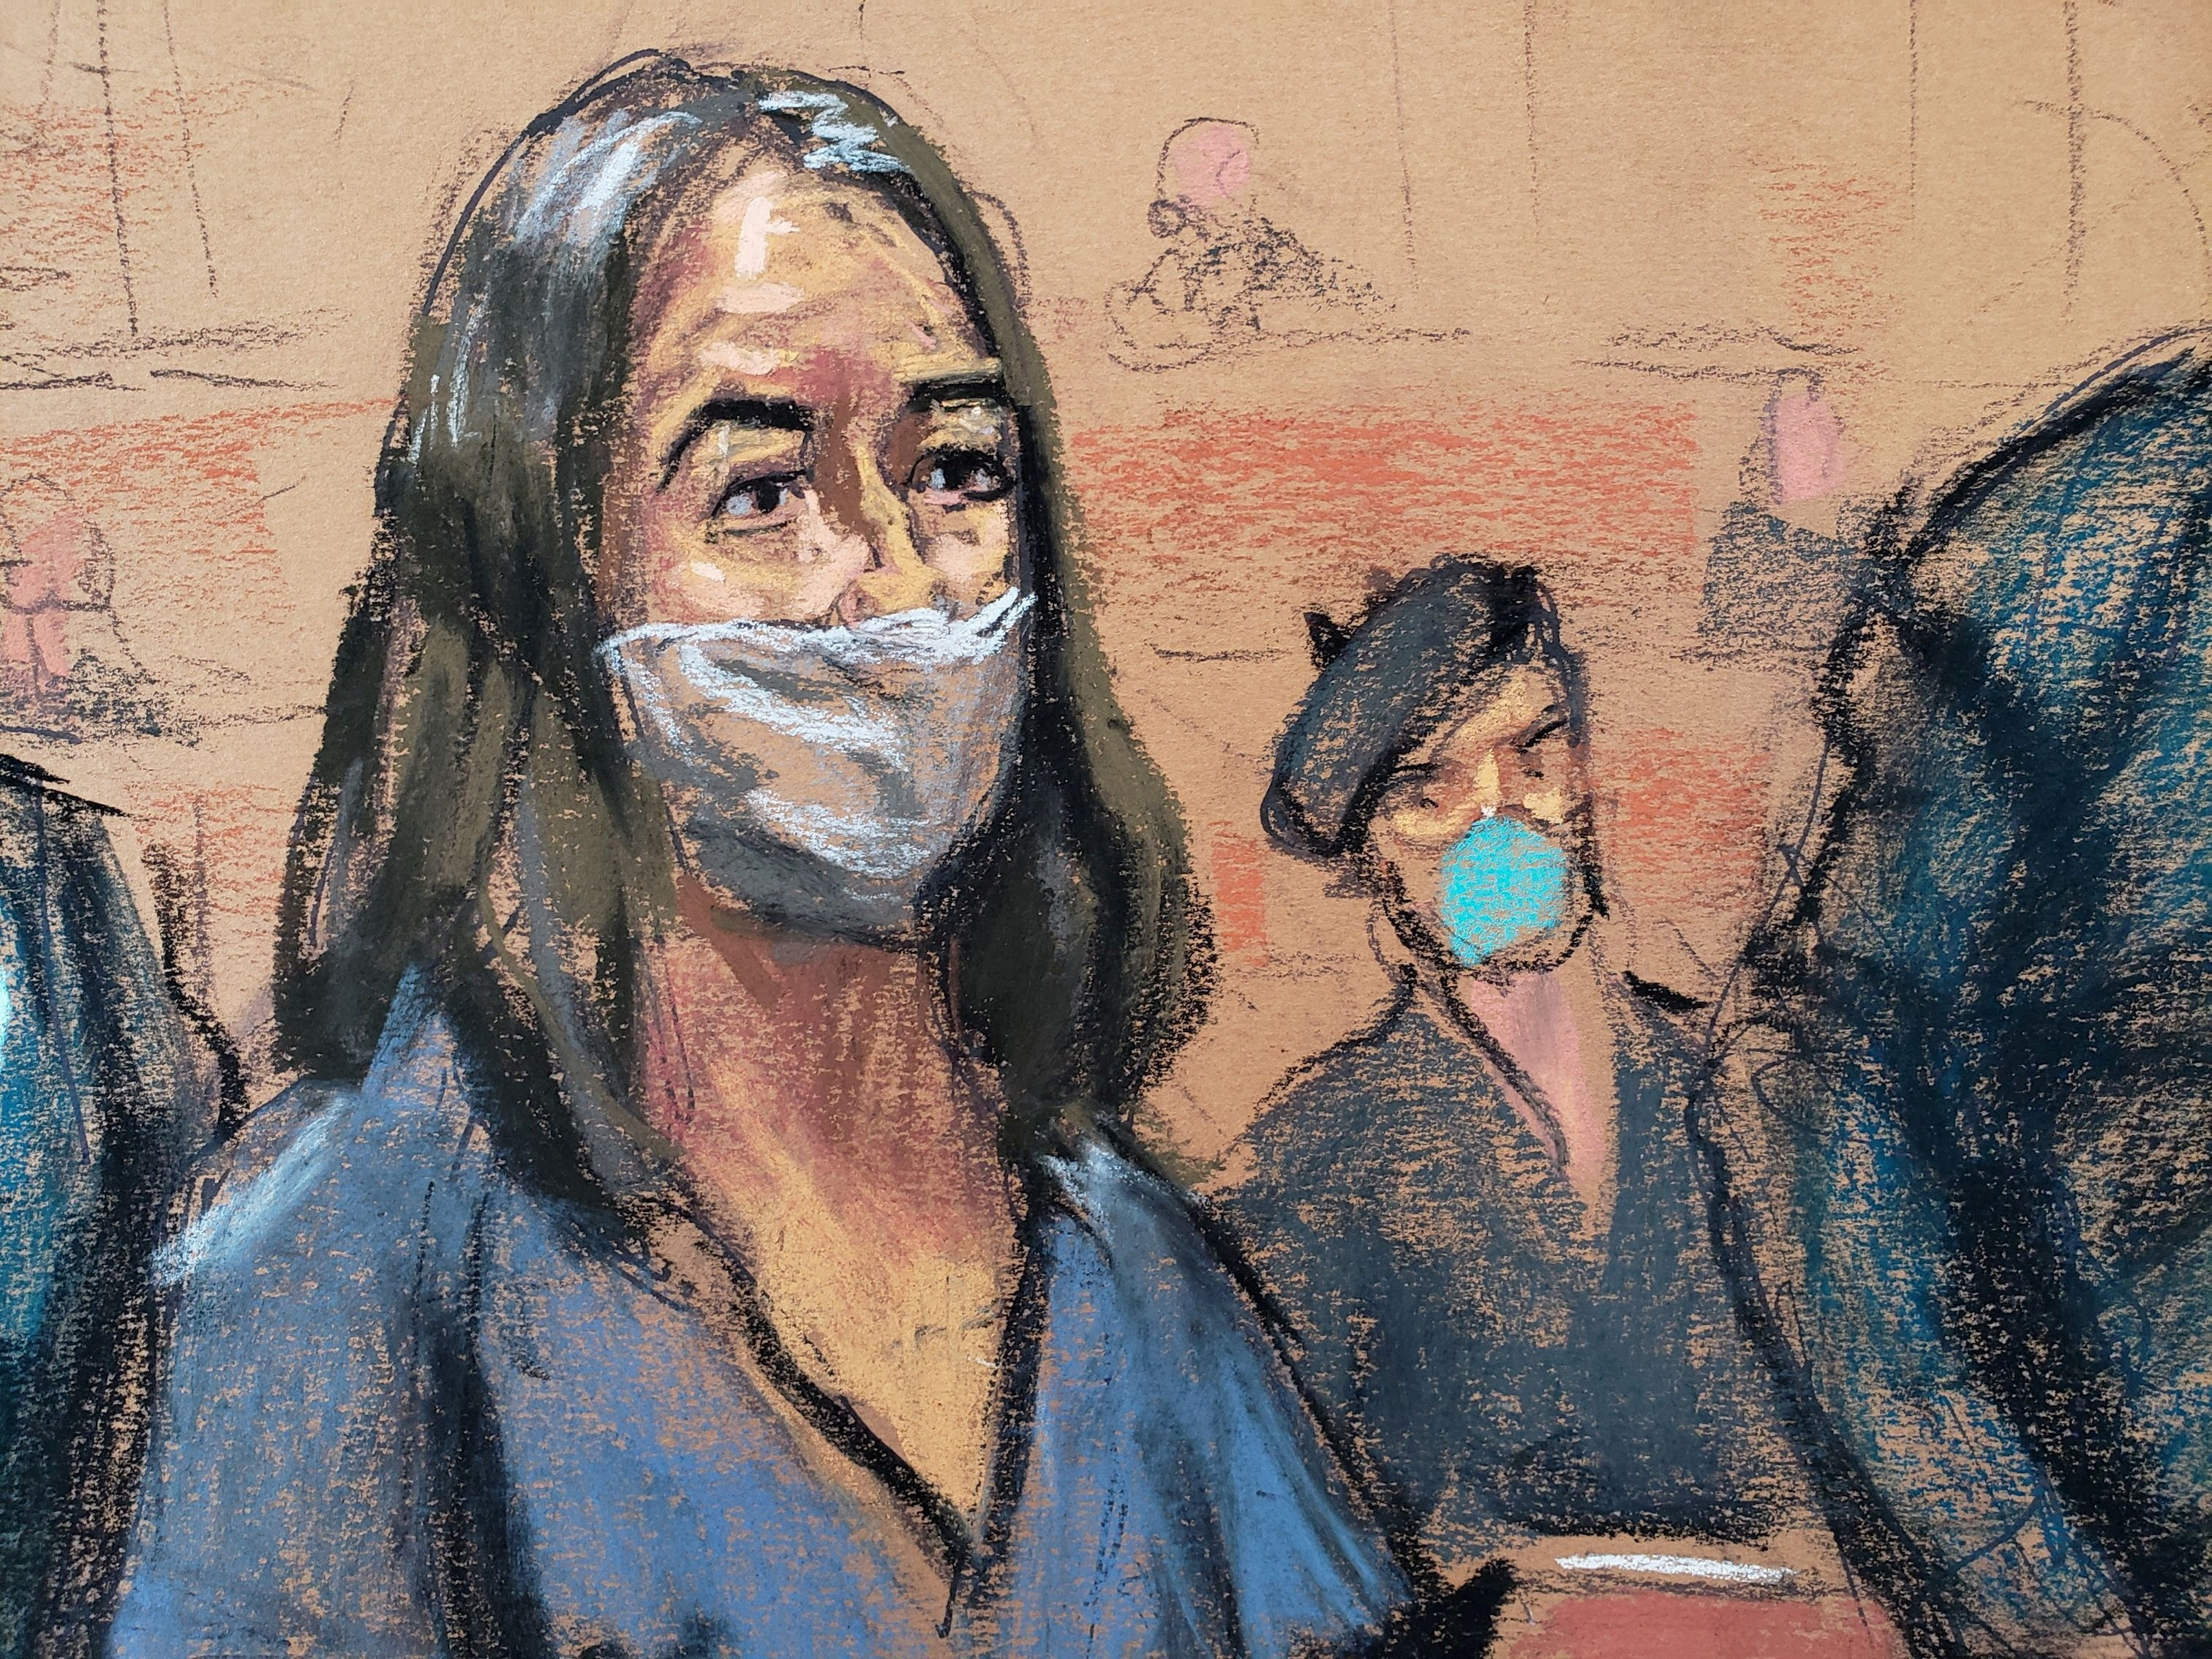 British socialite Ghislaine Maxwell appears during her arraignment hearing on a new indictment at Manhattan Federal Court in New York City, New York, U.S. April 23, 2021, in this courtroom sketch. REUTERS/Jane Rosenberg/File Photo